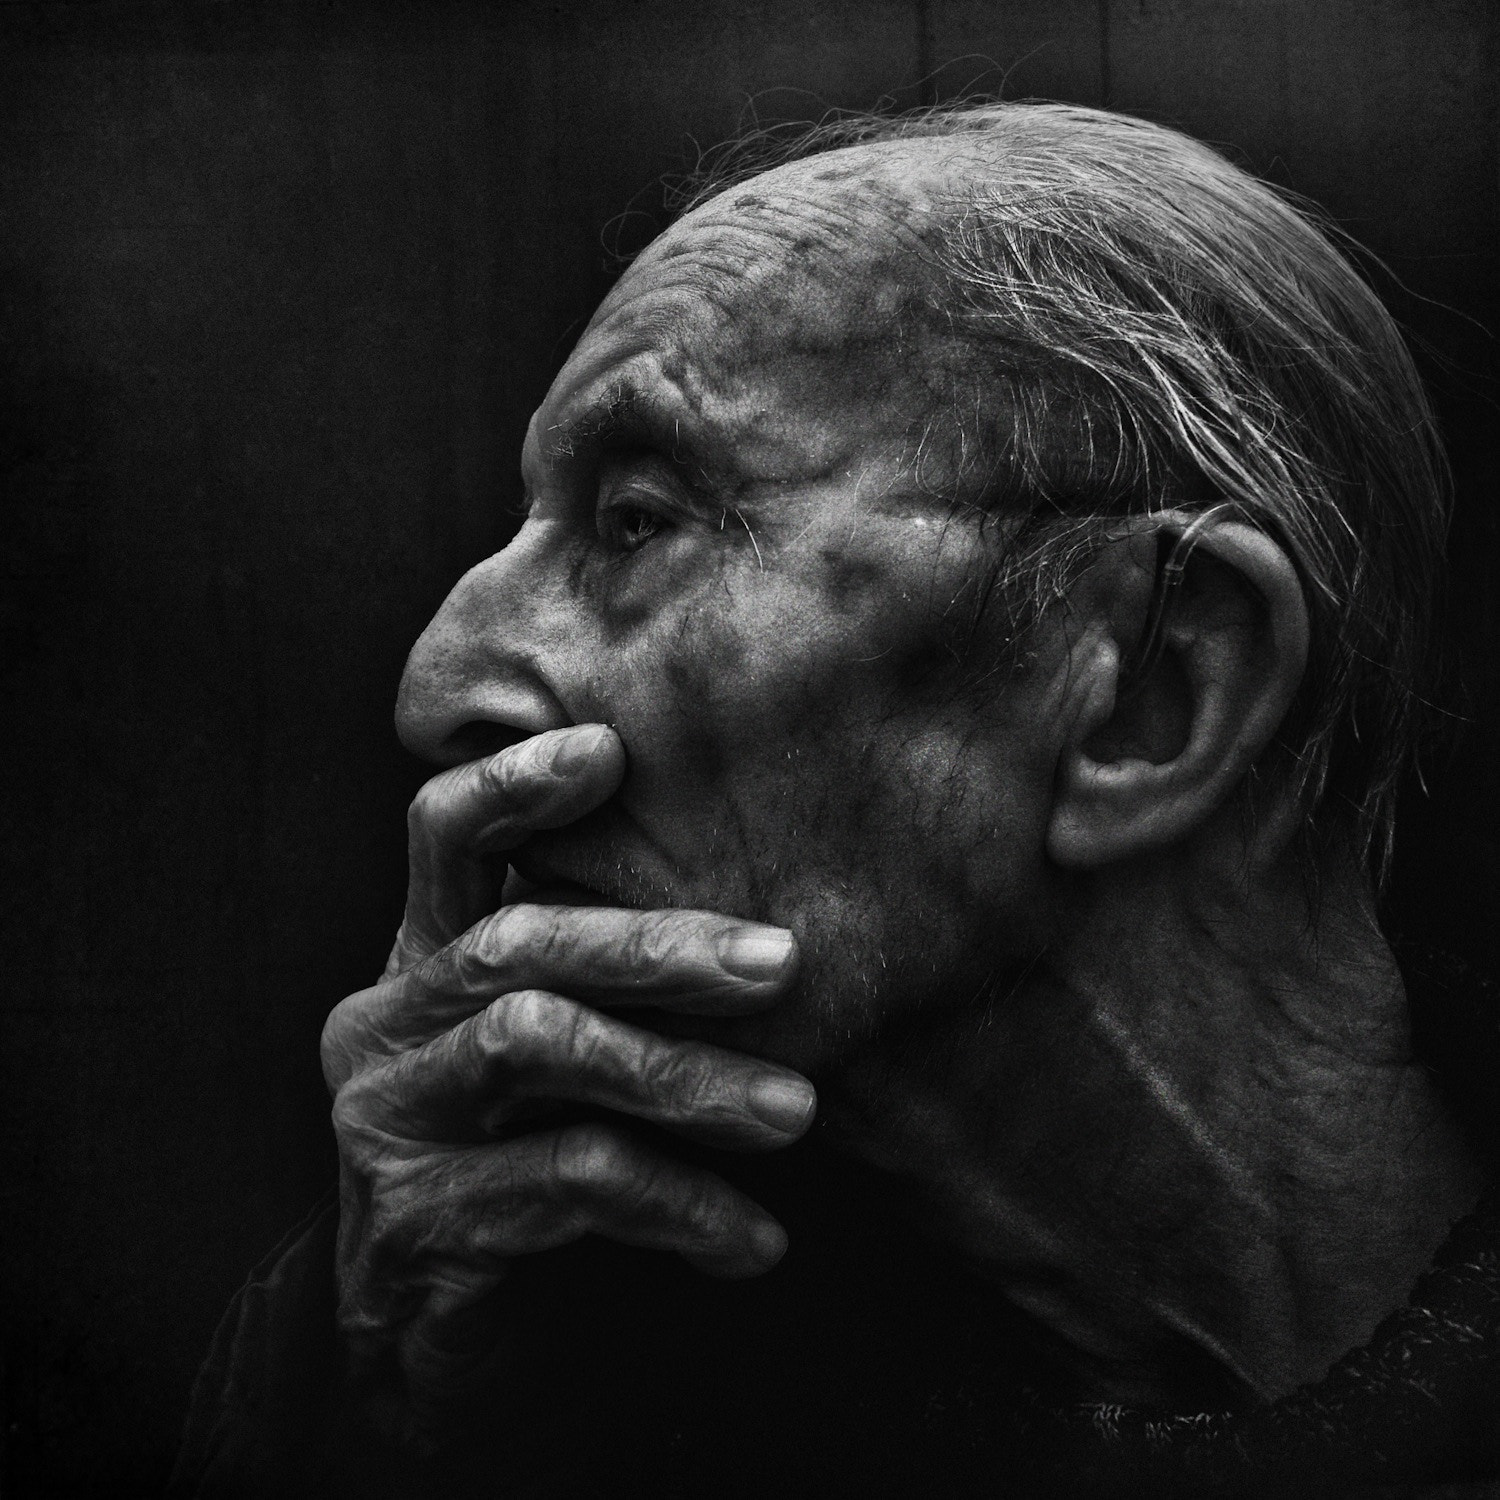 Photograph Landon by Lee Jeffries on 500px